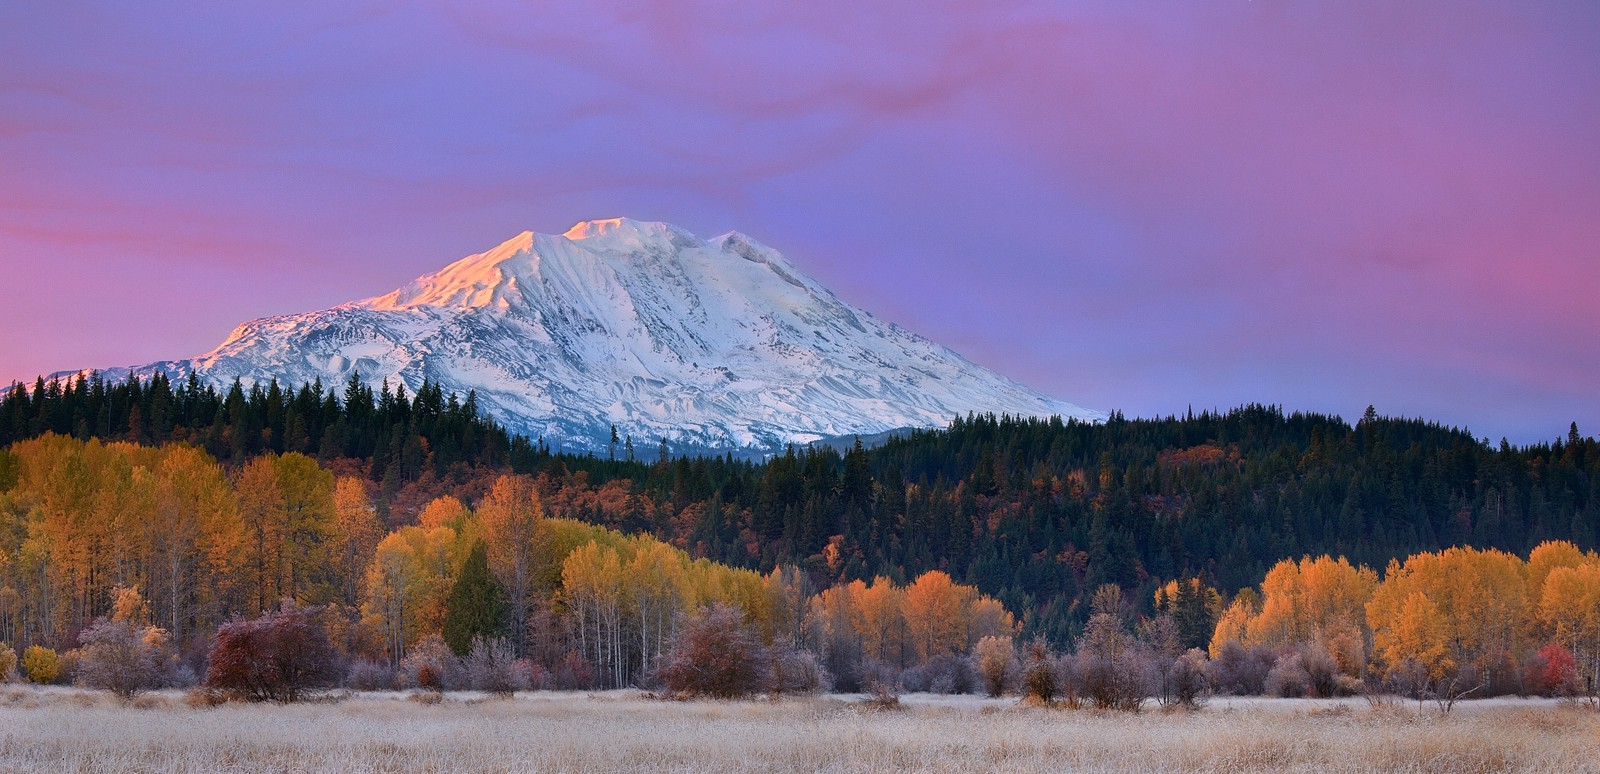 Home Fall Desktop Wallpapers Mountain Fall Washington State Forest Snowy Peak